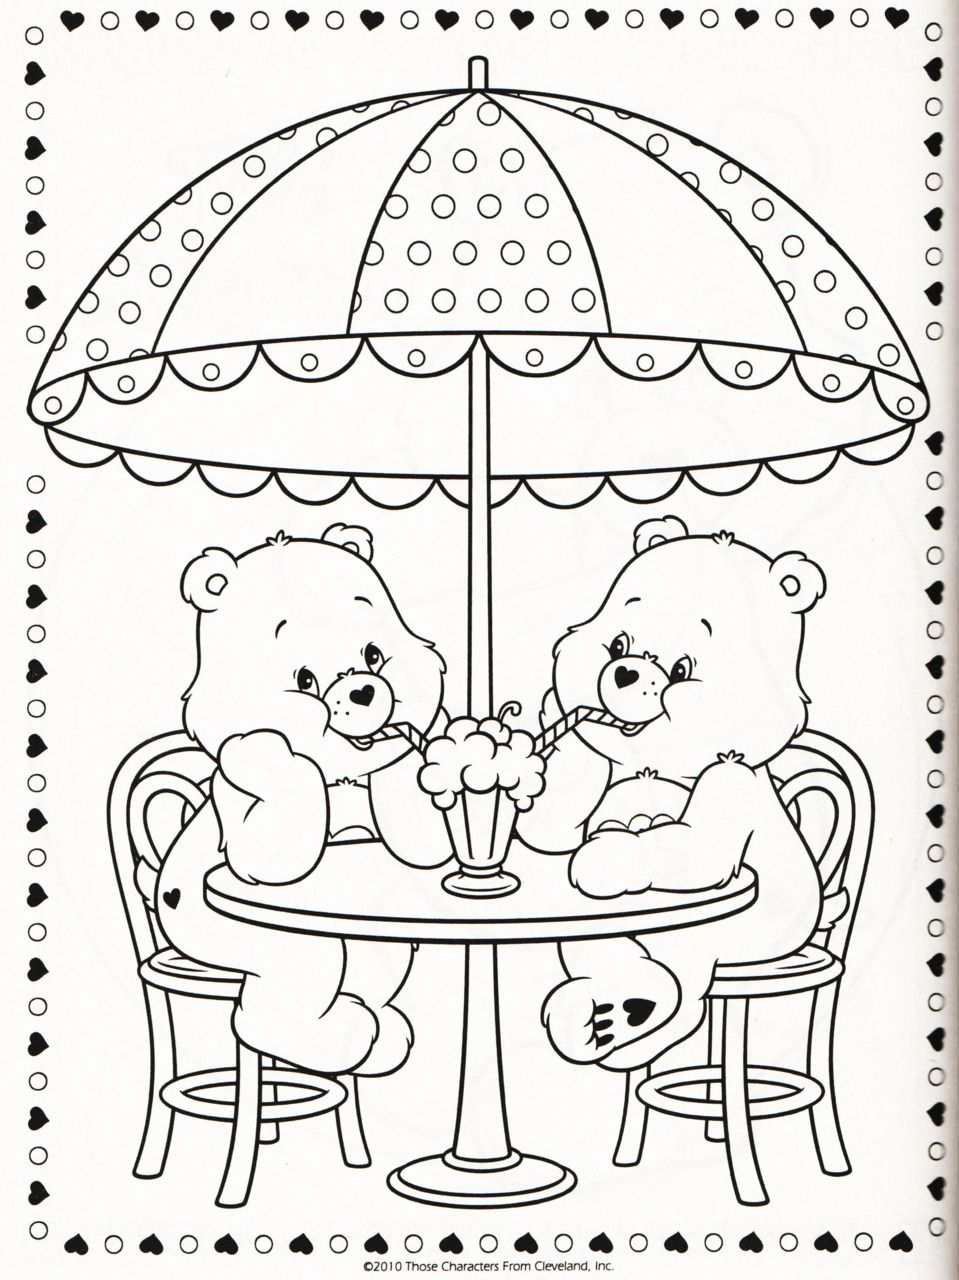 Blog Devoted To Coloring Pages I Welcome And Hope For You To